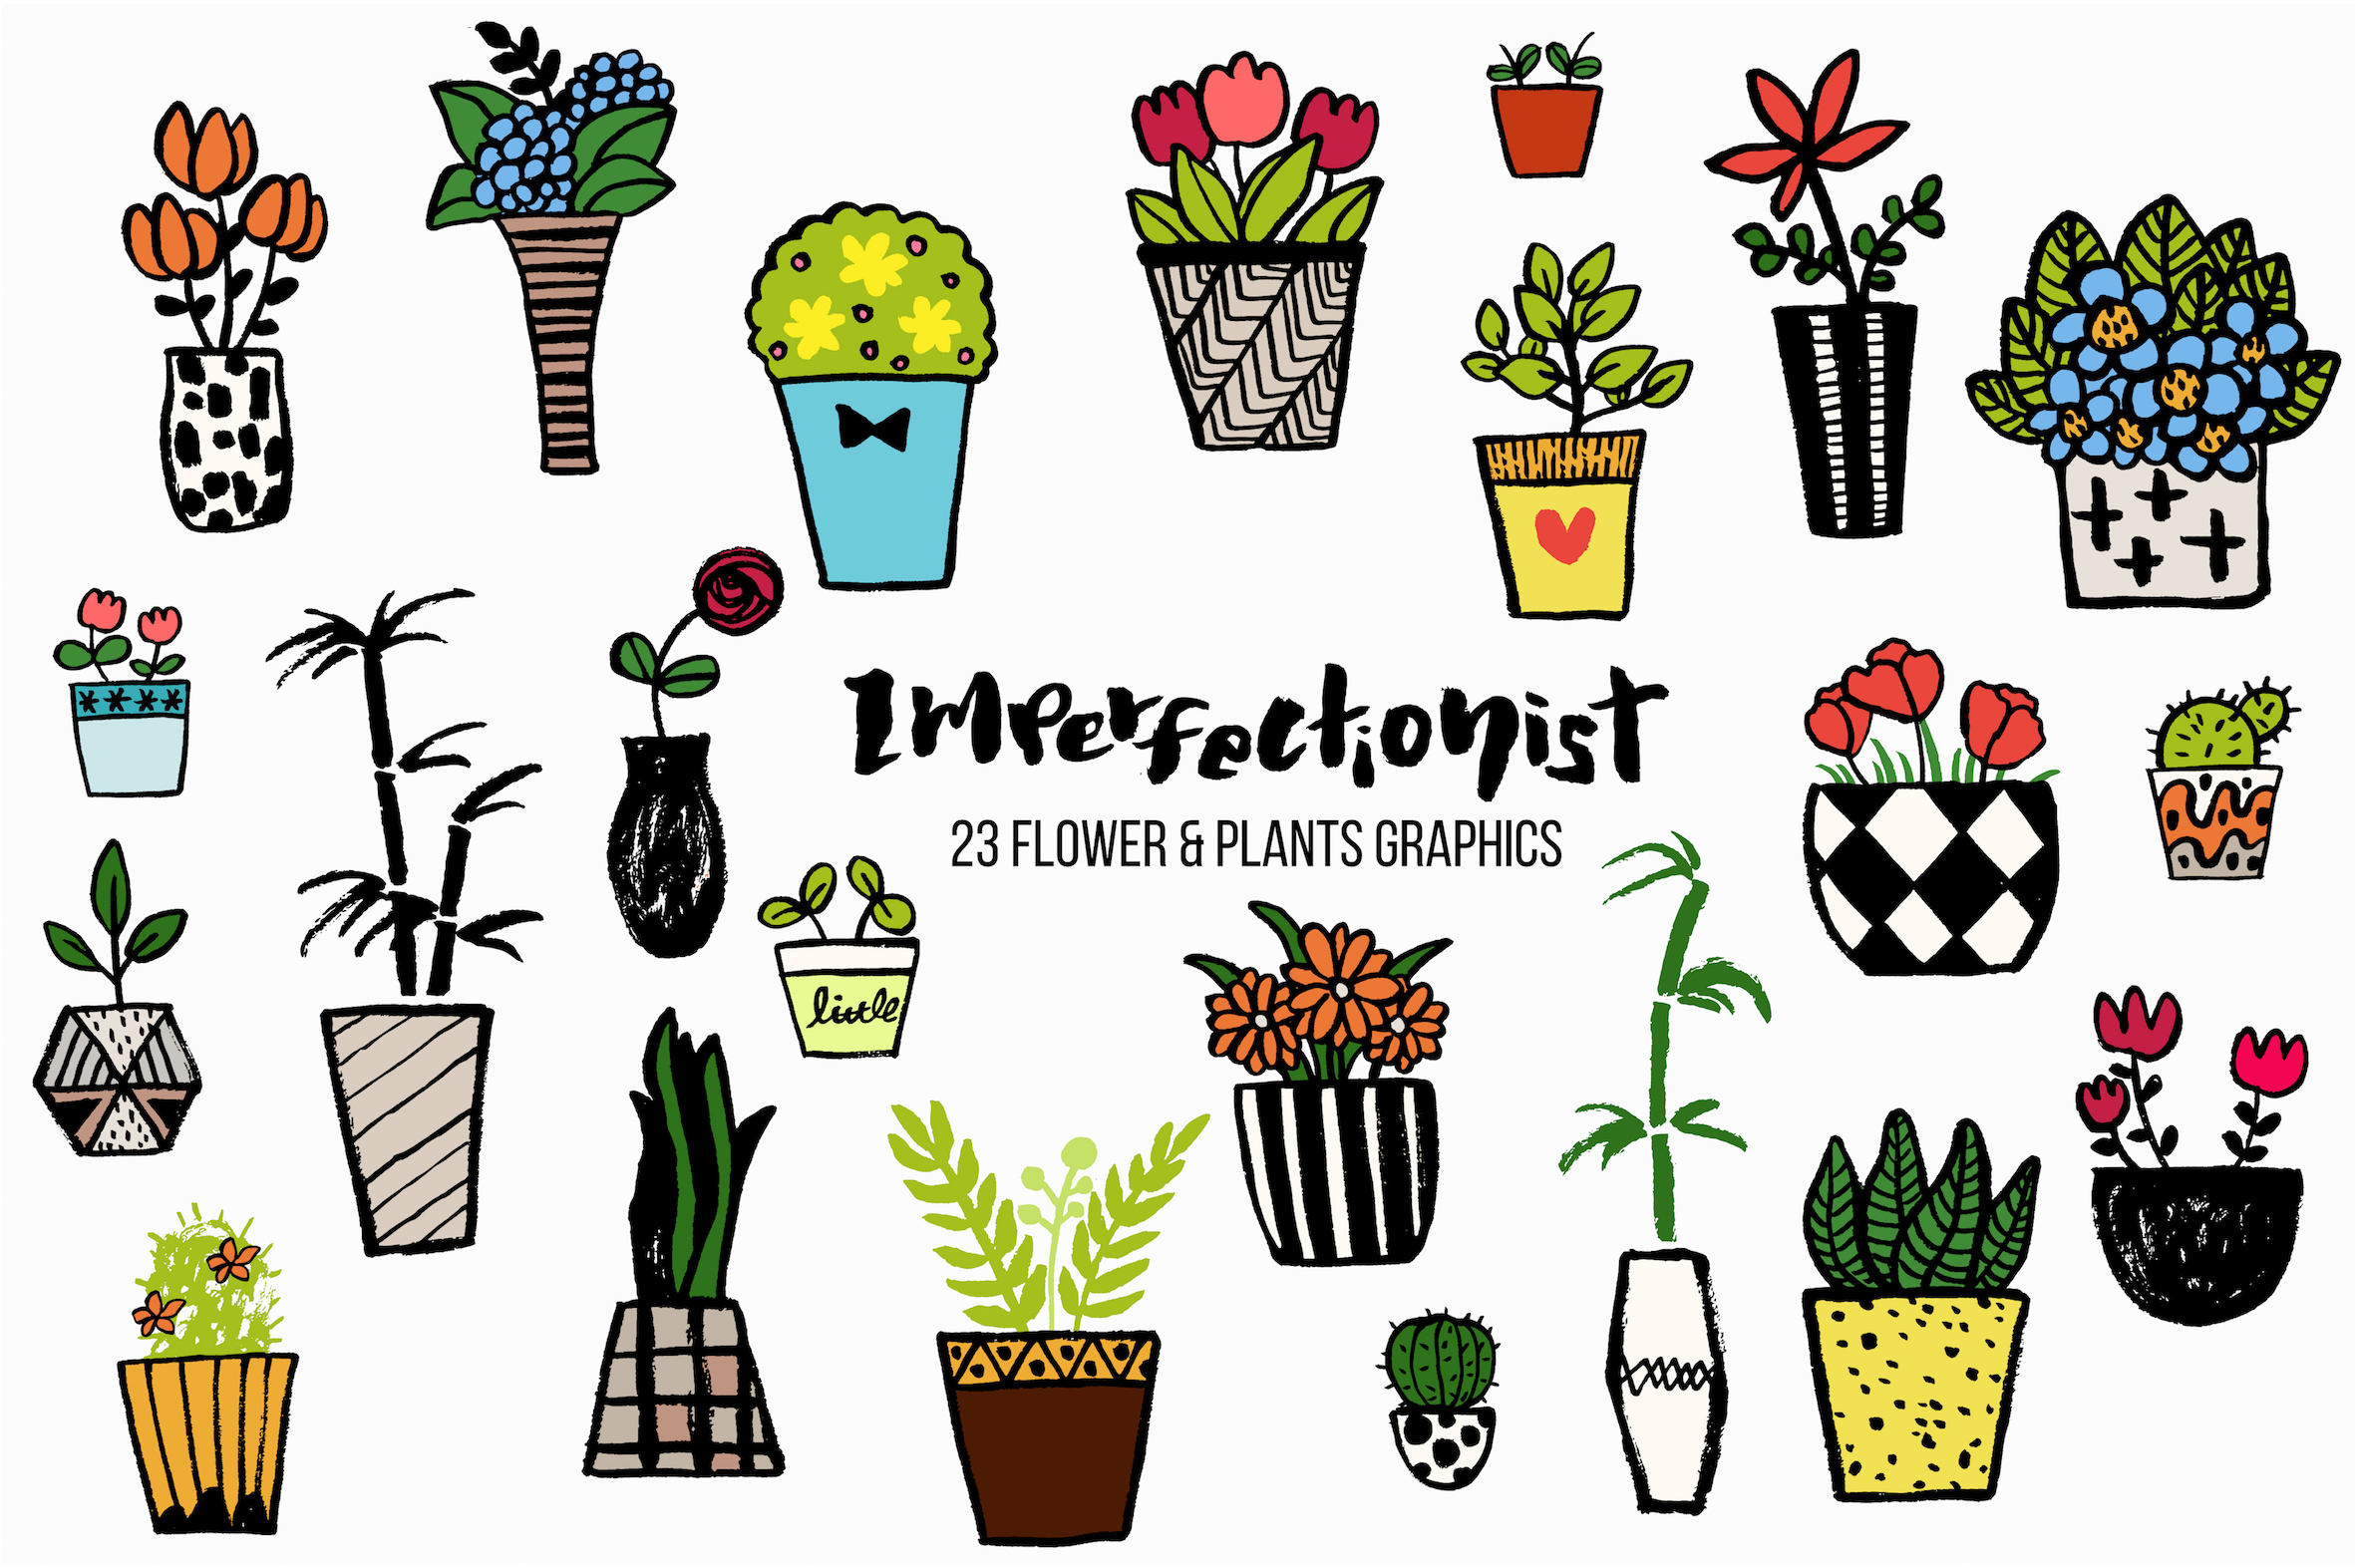 Imperfectionist - Inked Plant pots example image 4